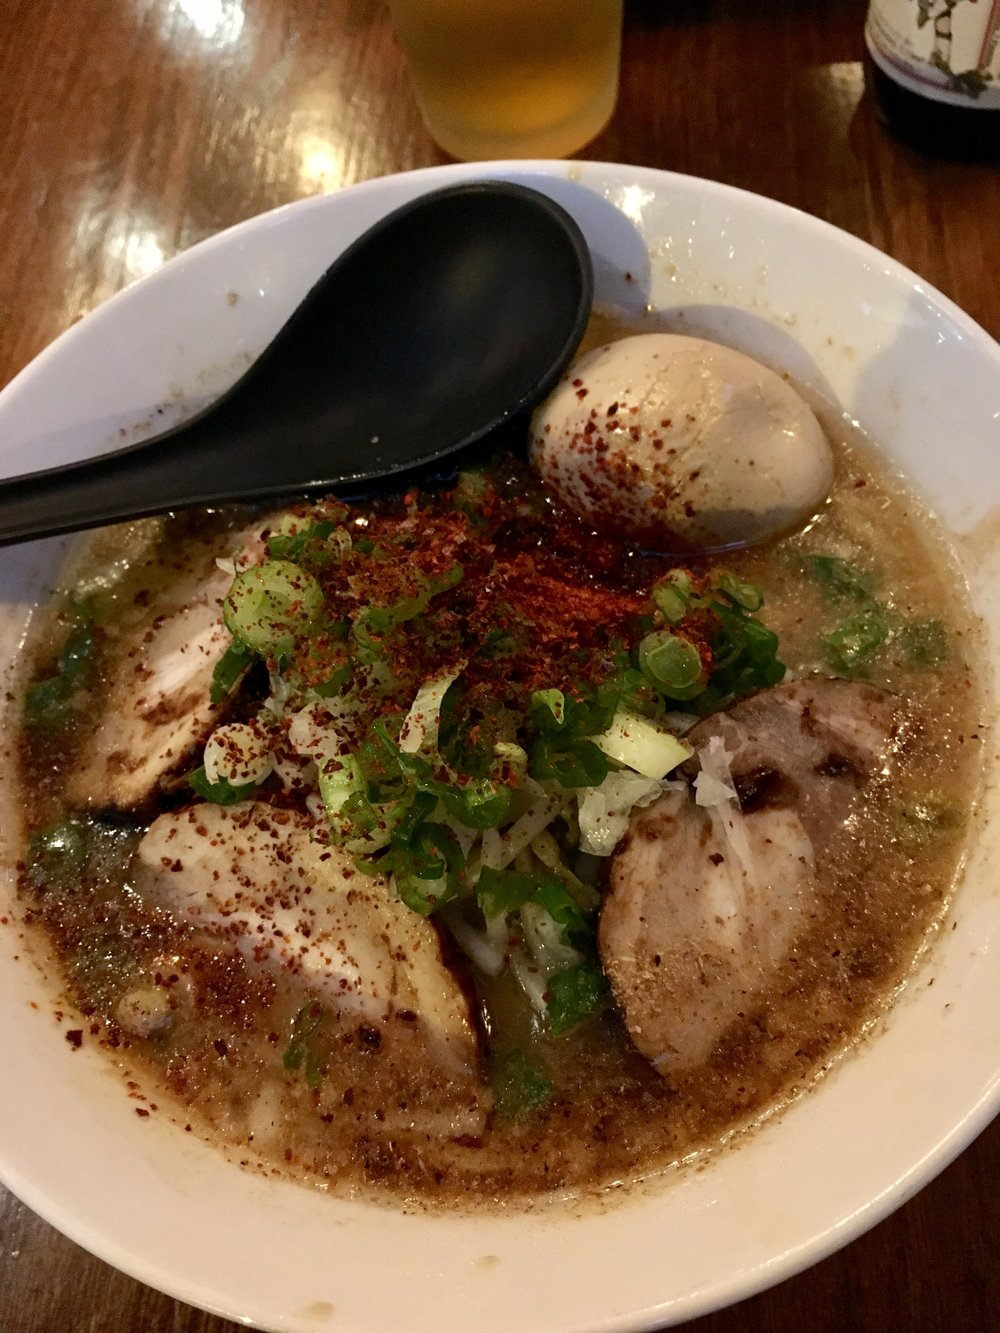 Cha Cha Cha Ramen- pork and fish broth, pork chashu, seasoned egg, bean sprouts, chopped onion, green onion, garlic, chill powder, thick noodle